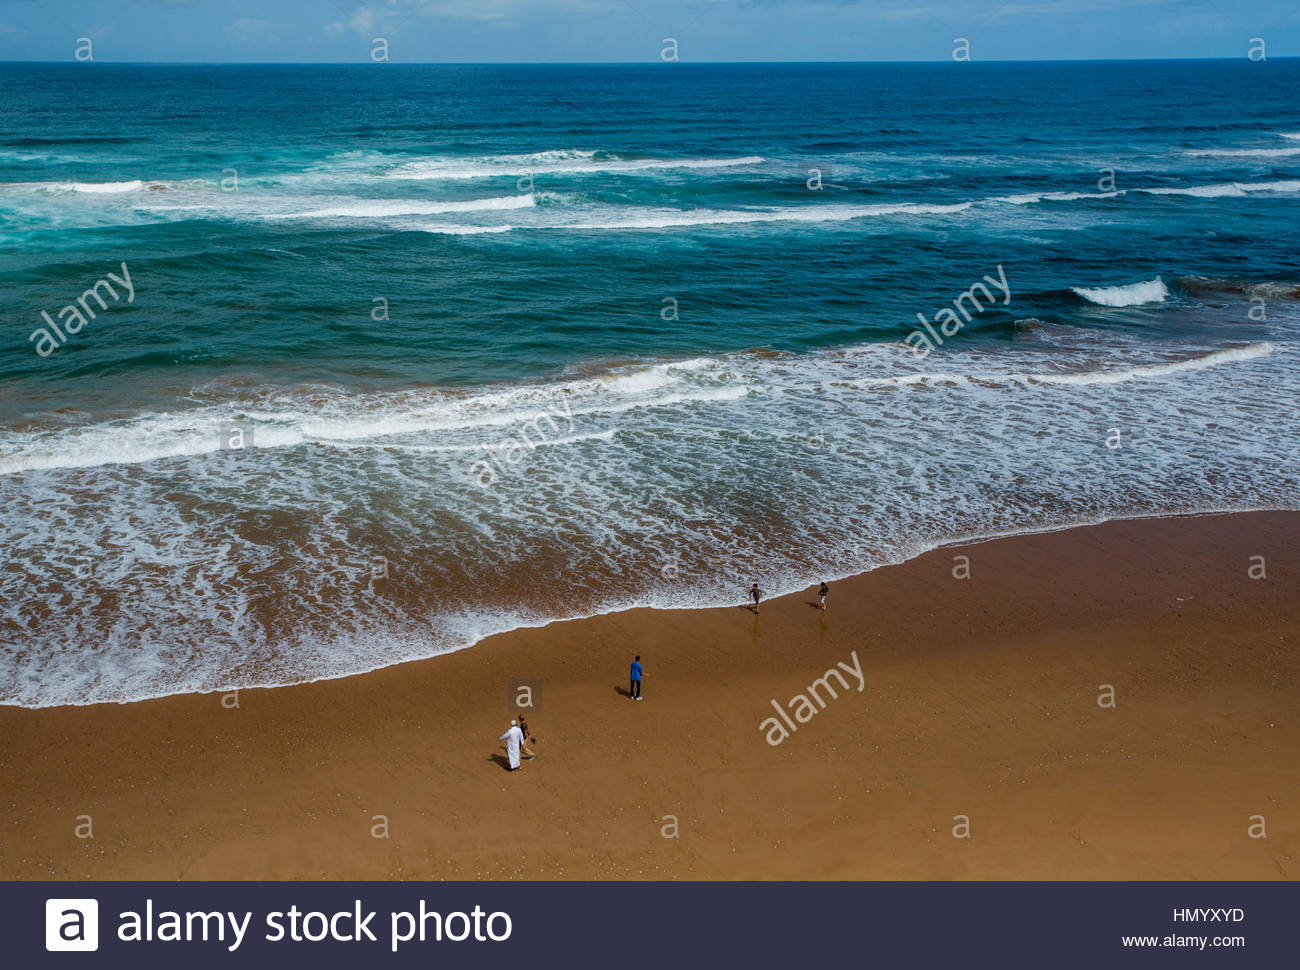 The coastline and a flat beach north of Taghazout, Morocco on a sunny day. - Stock Image